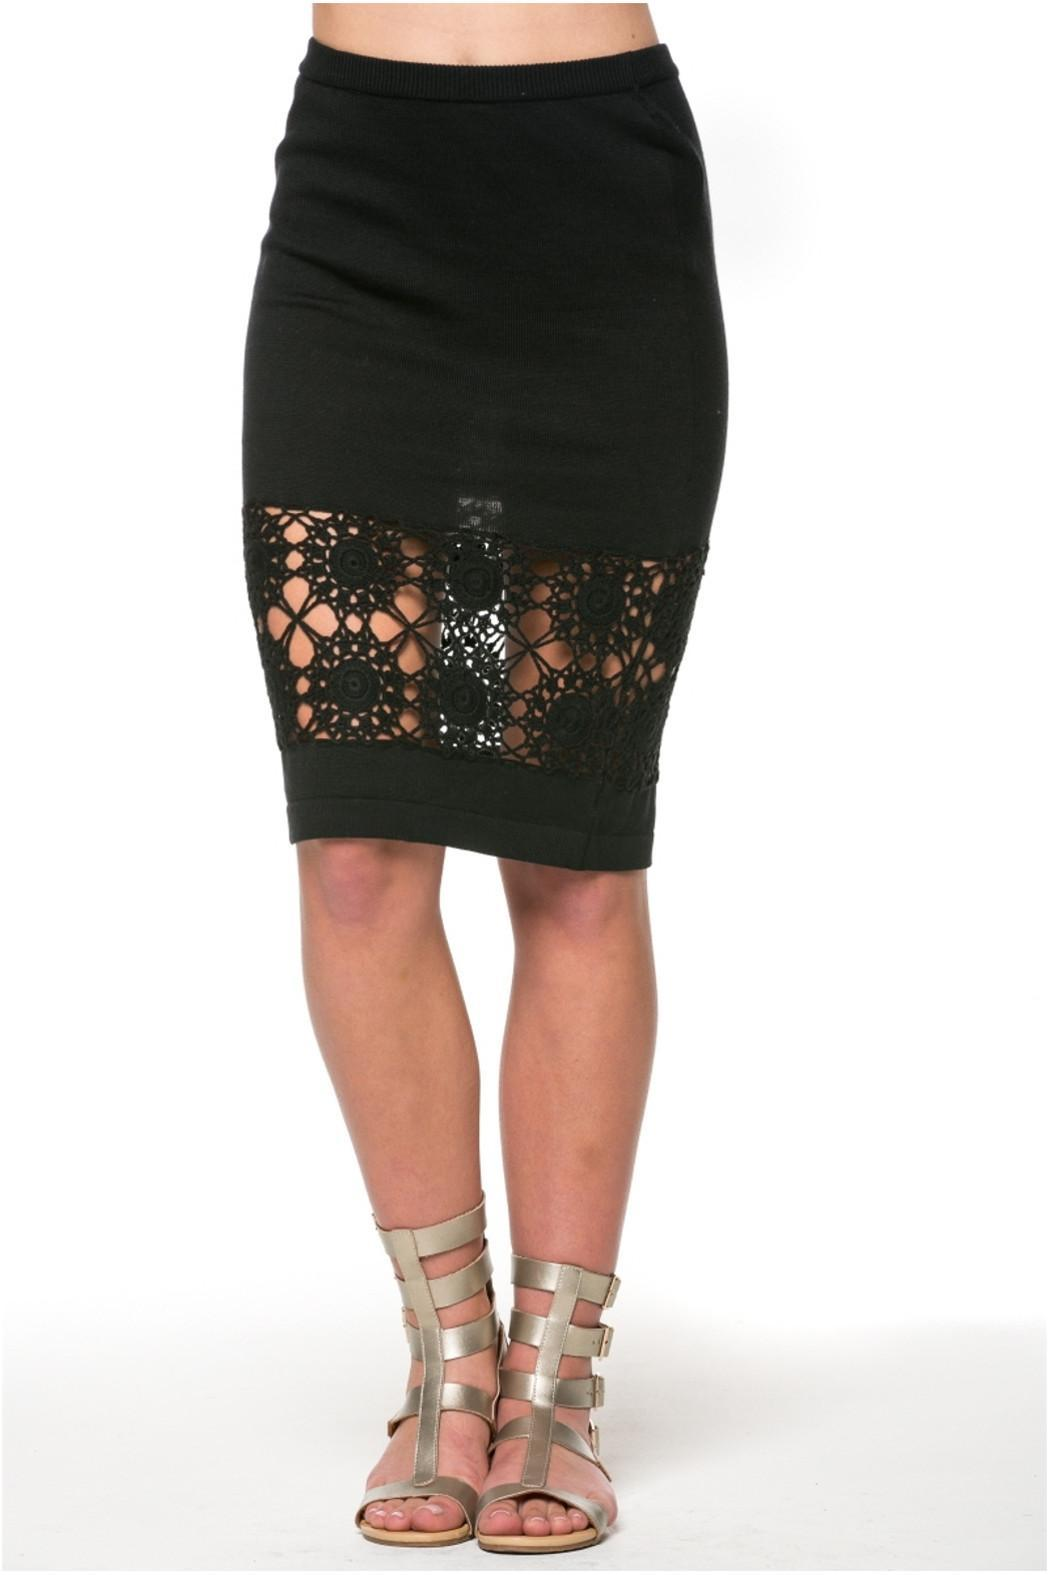 POL Crochet Pencil Skirt - Front Cropped Image